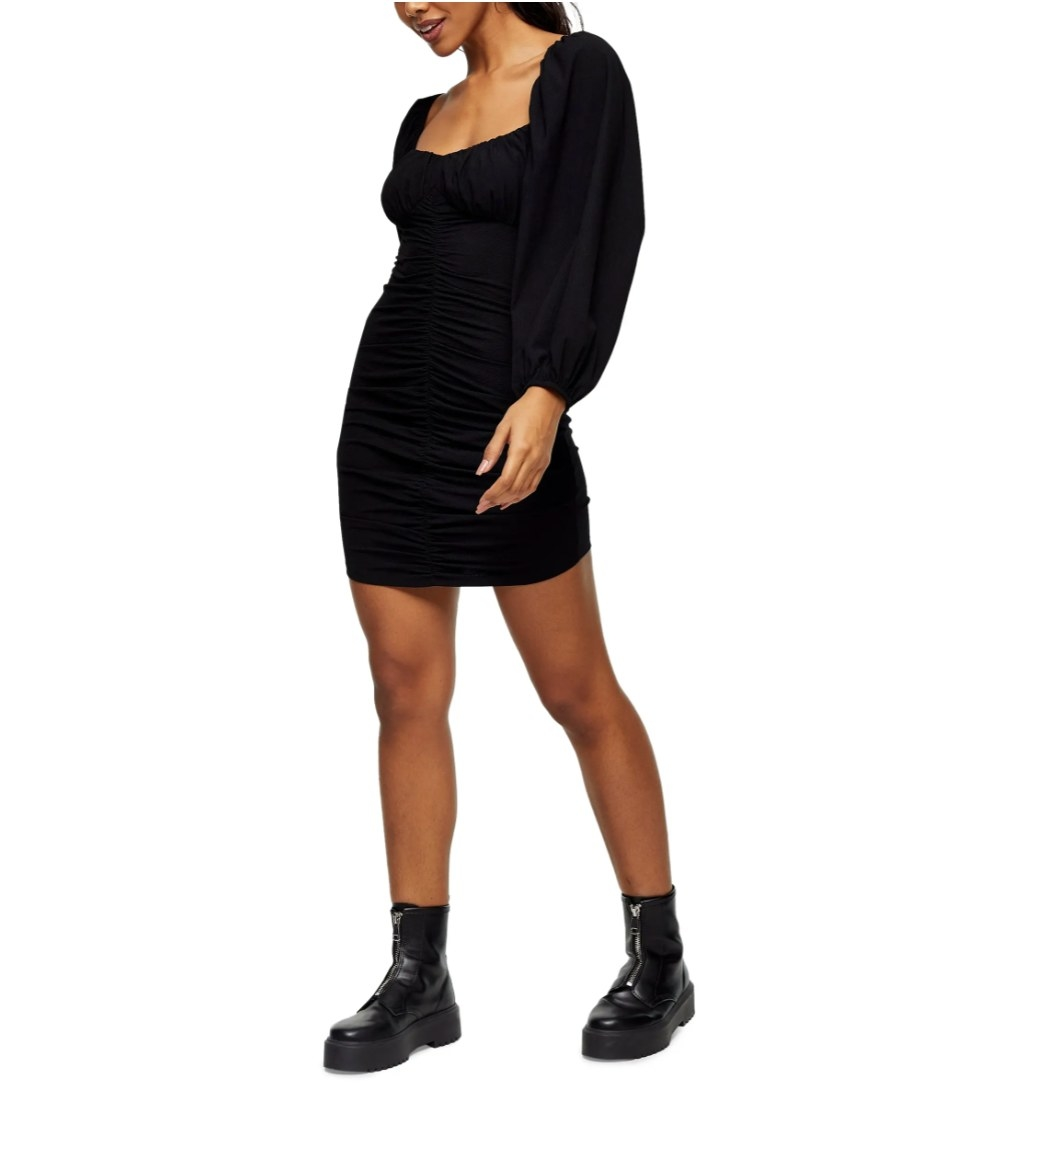 The ruched long sleeve black dress from TopShop